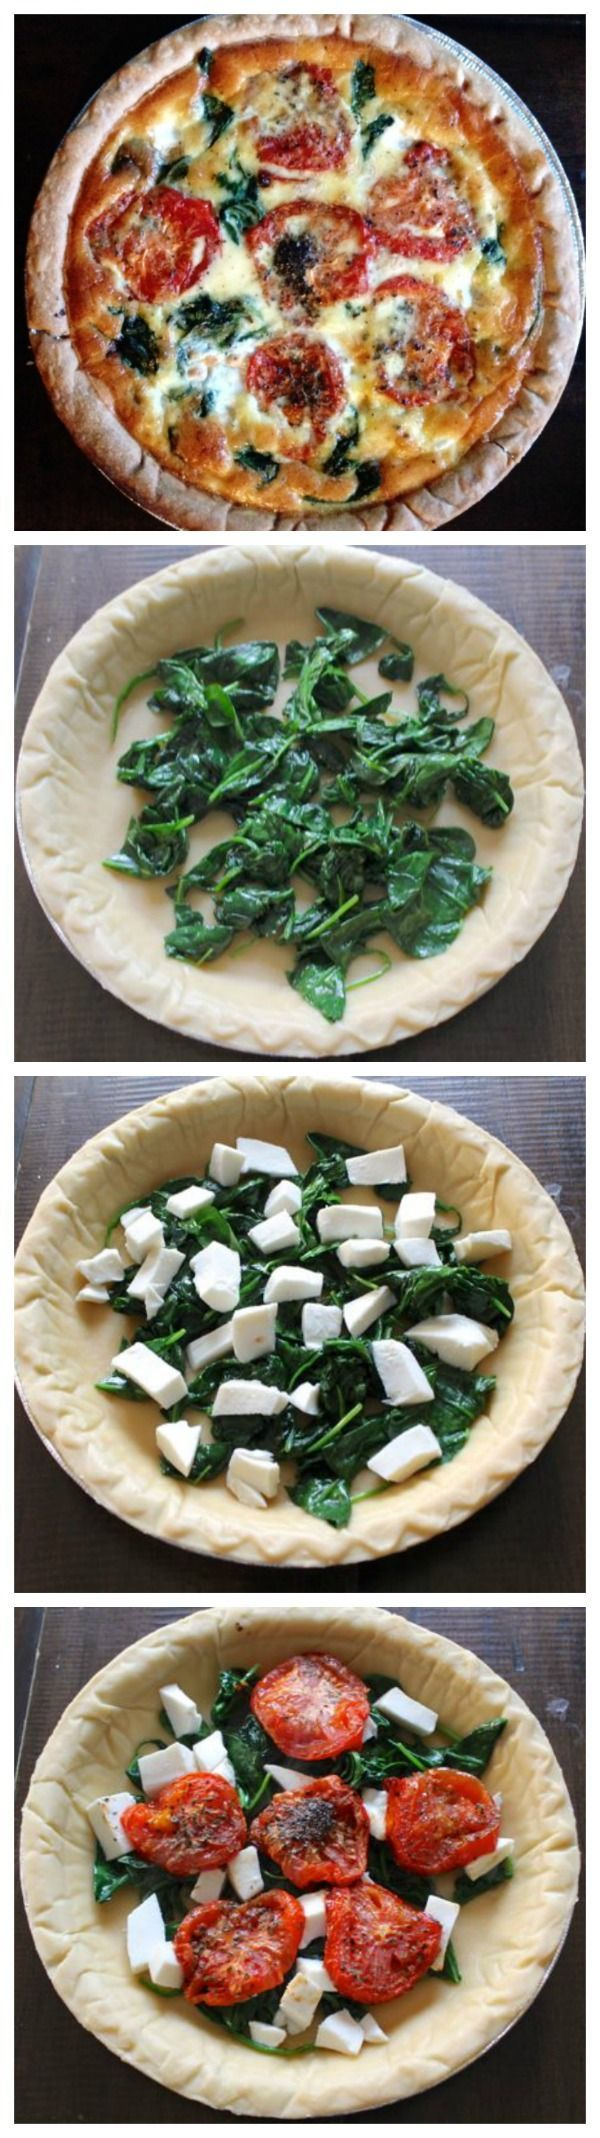 Roasted Tomato, Spinach, and Mozzarella Quiche Recipe